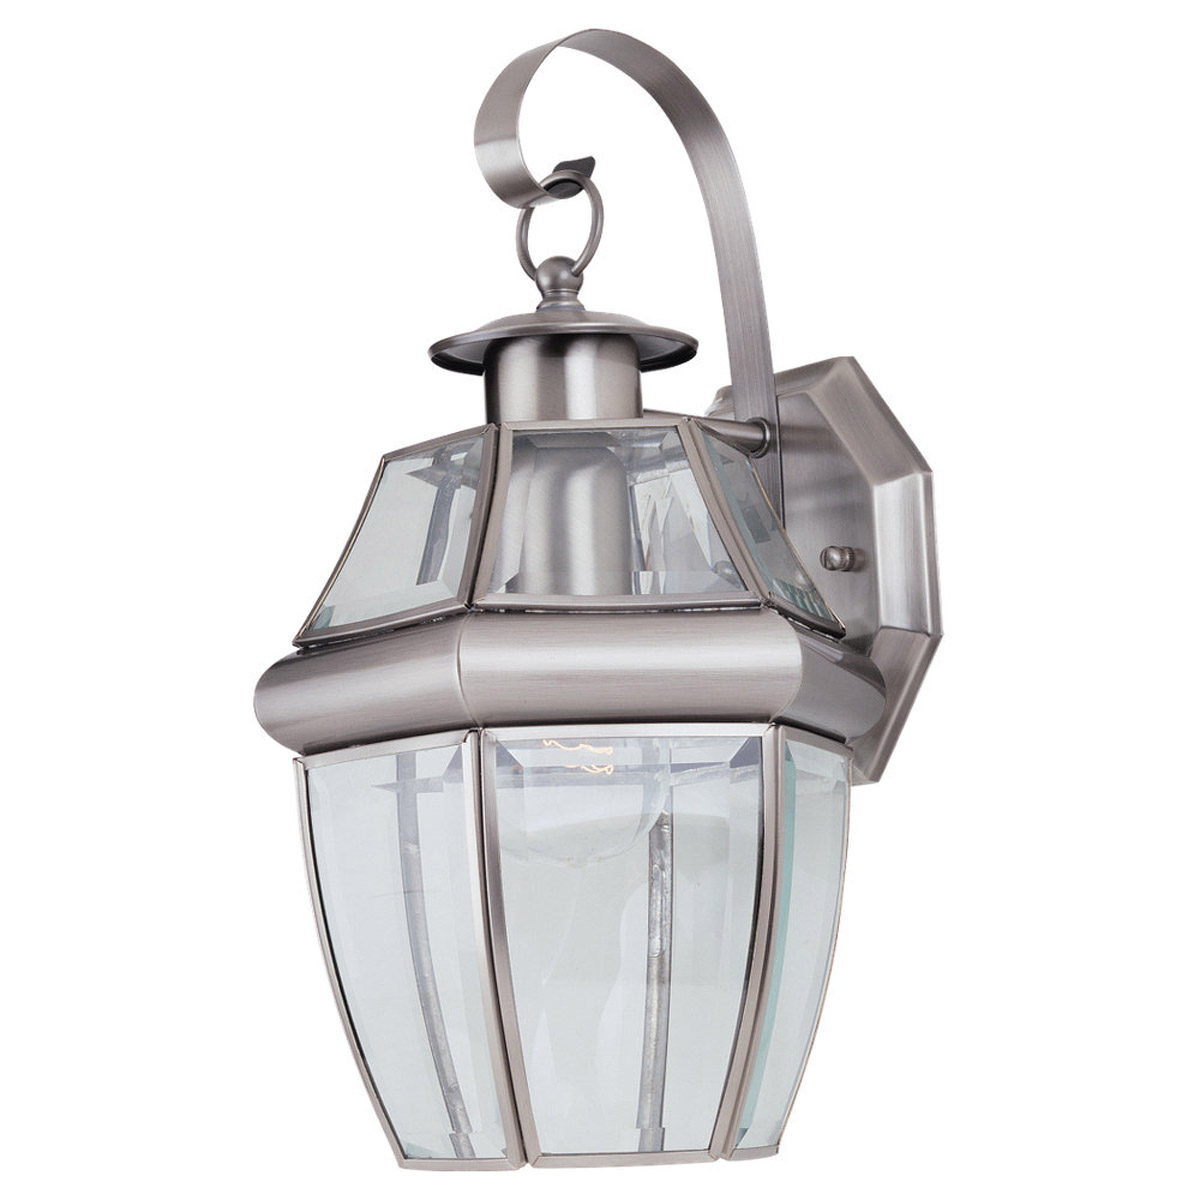 Sea Gull Lighting Lancaster 1 Light Outdoor Wall Lantern in Antique Brushed Nickel 8037-965 photo